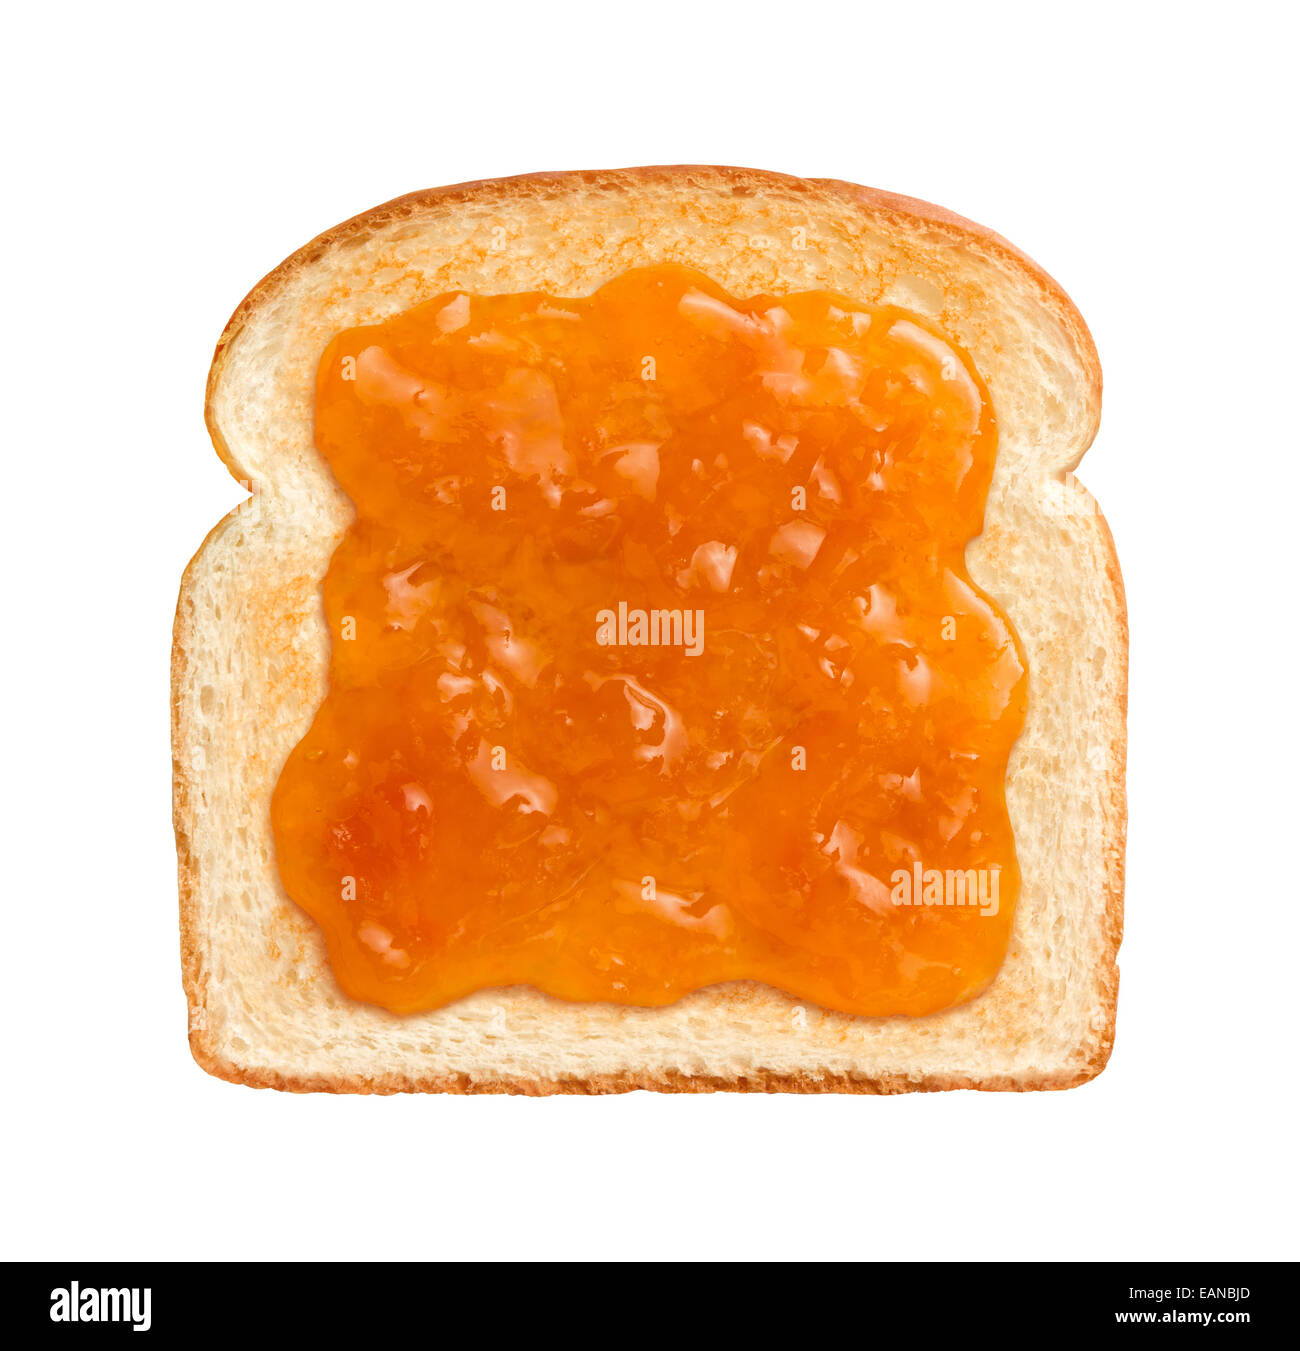 Aerial view of Apricot Preserves on a single slice of lightly toasted white bread. Isolated on white. - Stock Image